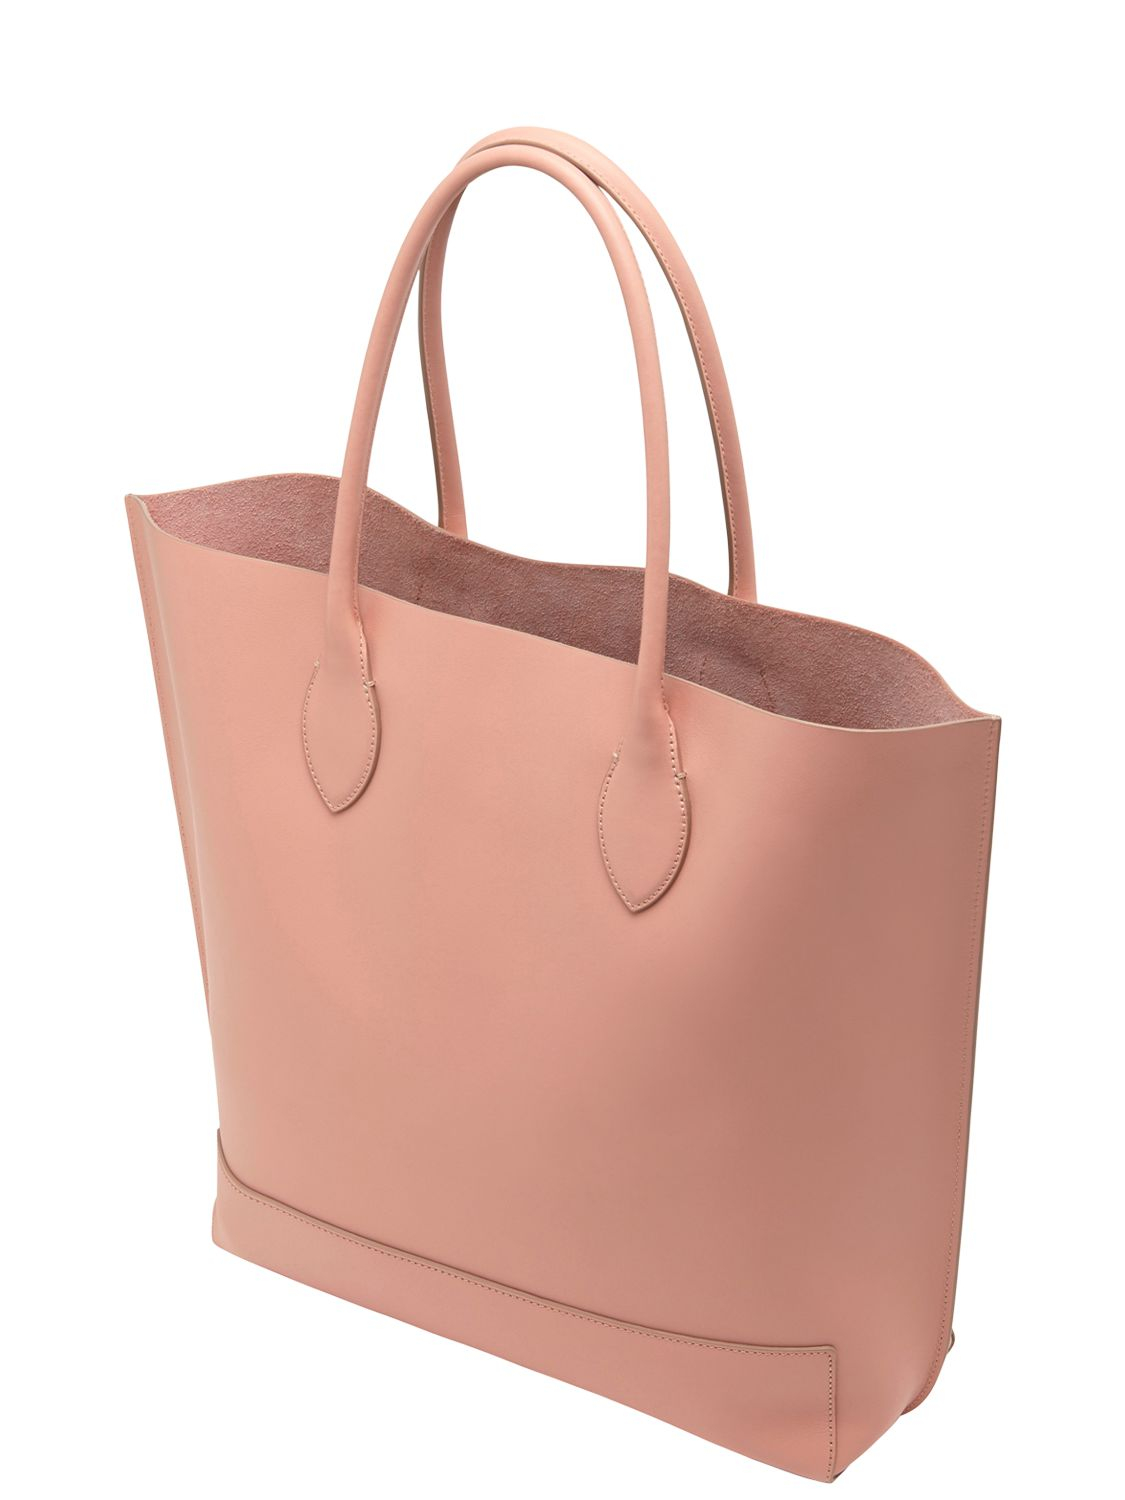 ... hot lyst mulberry blossom nappa leather tote bag in pink 2b5df c777f ba0e467edb3be